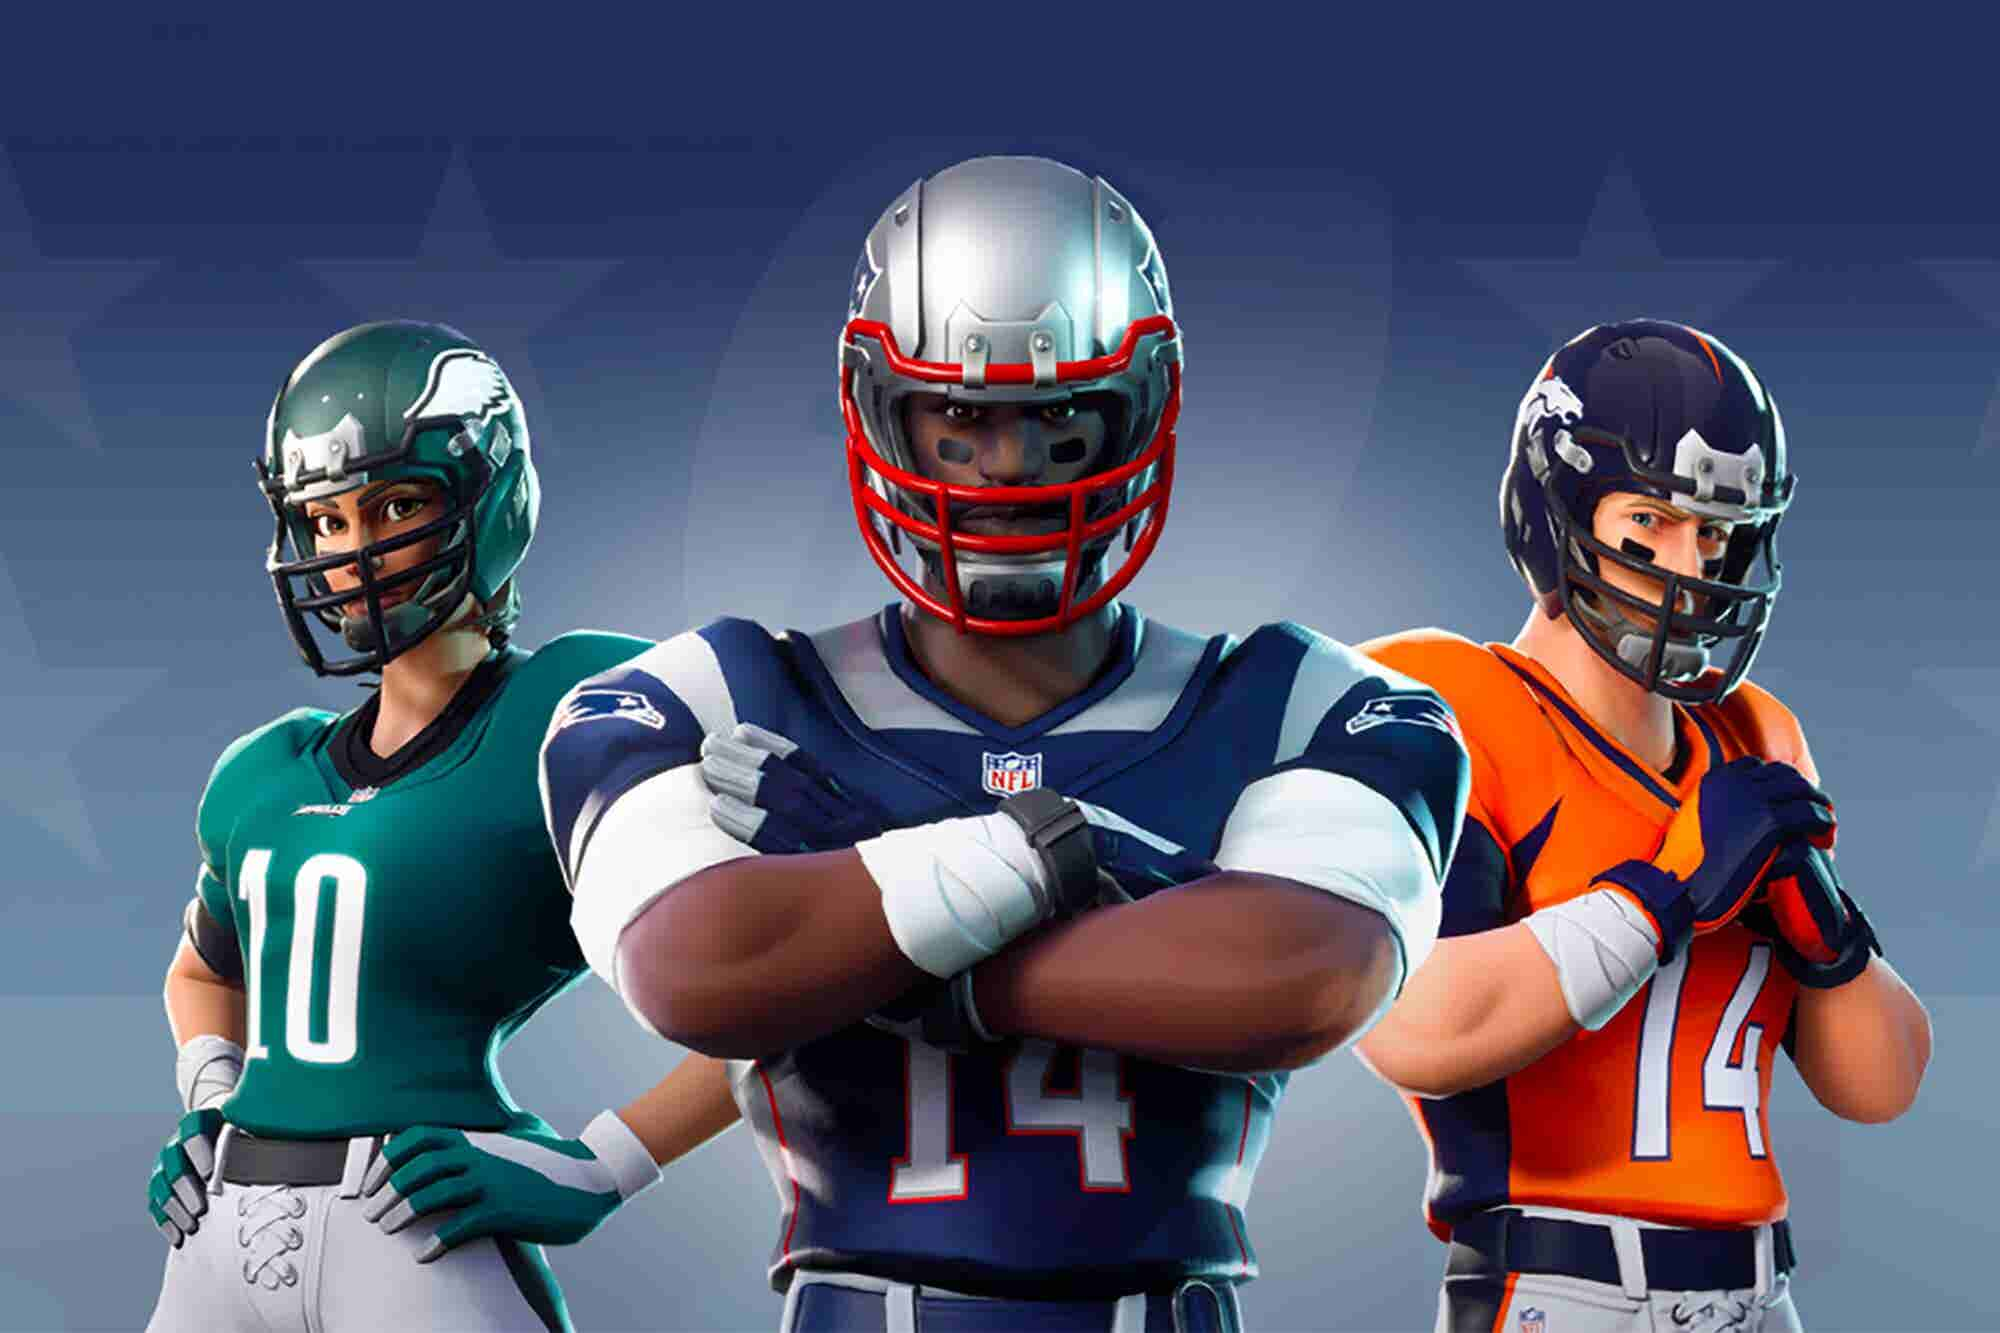 NFL Teams Up With Epic Games to Bring All 32 Team Uniforms to 'Fortnite'